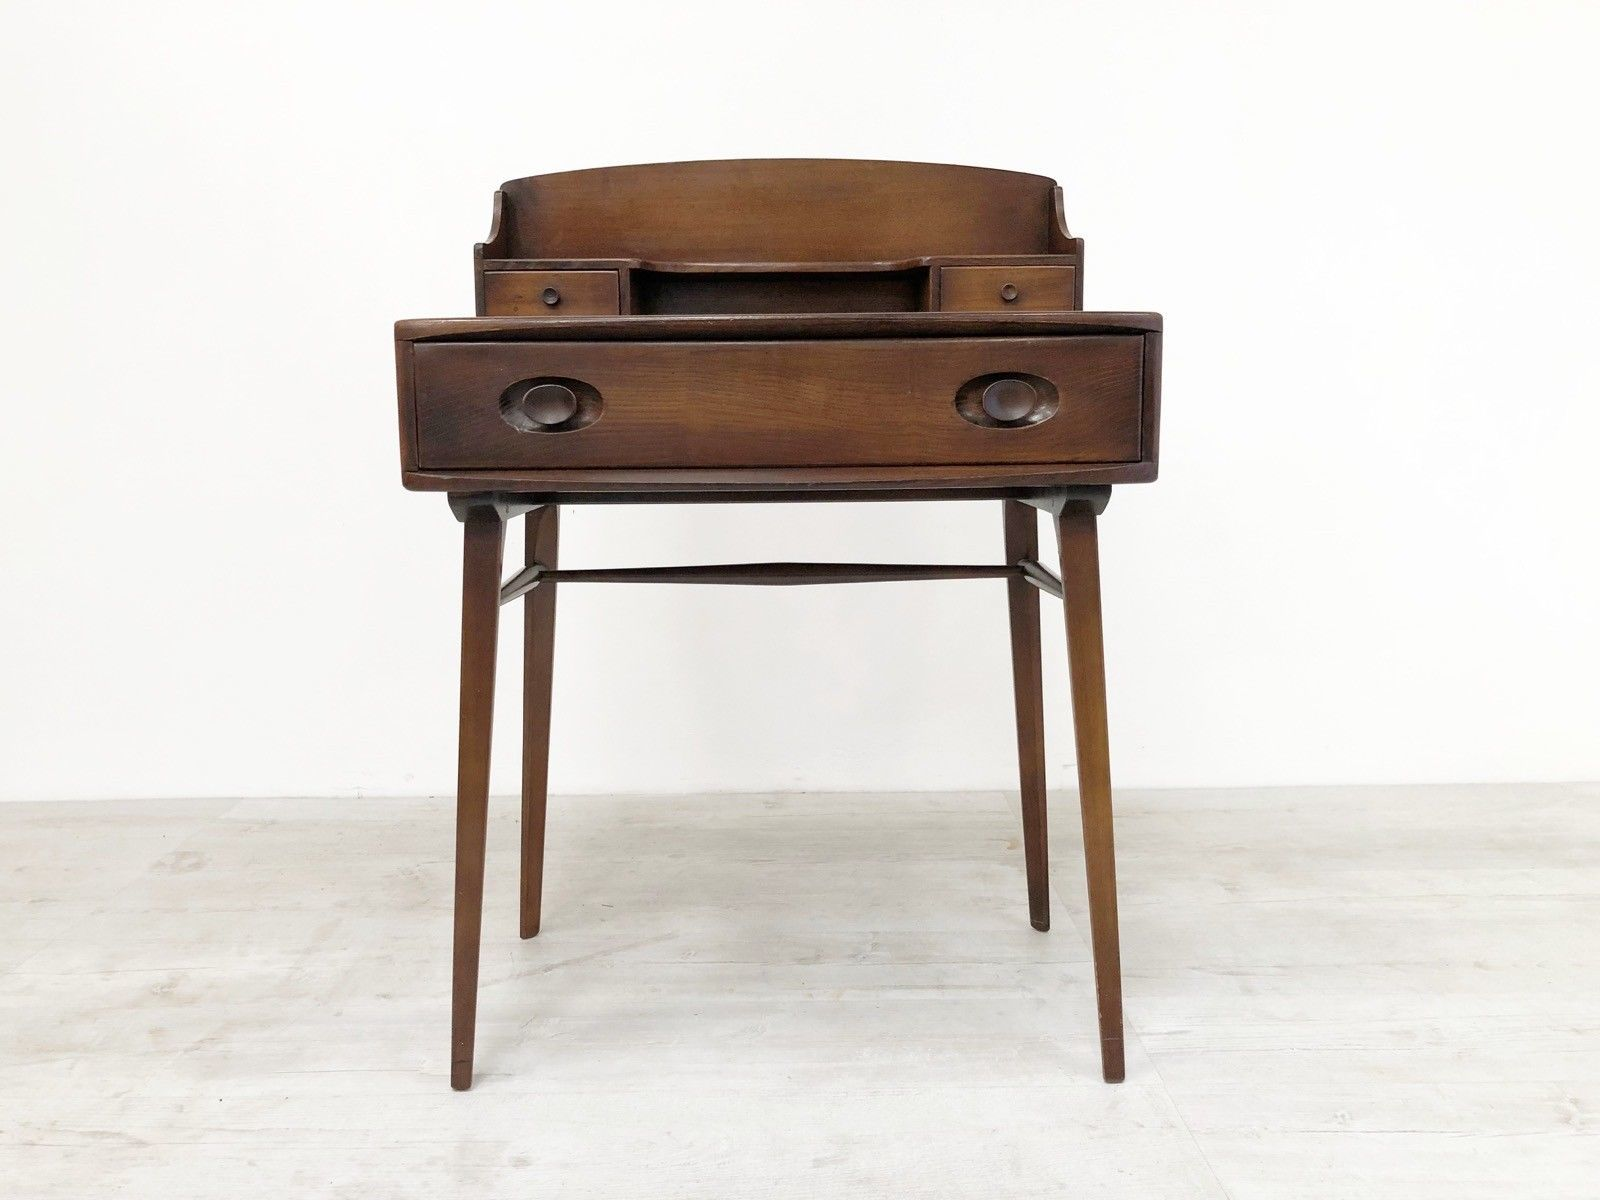 rare-vintage-mid-century-1950s-ercol-elm-compact-desk-dressing-table-439-437